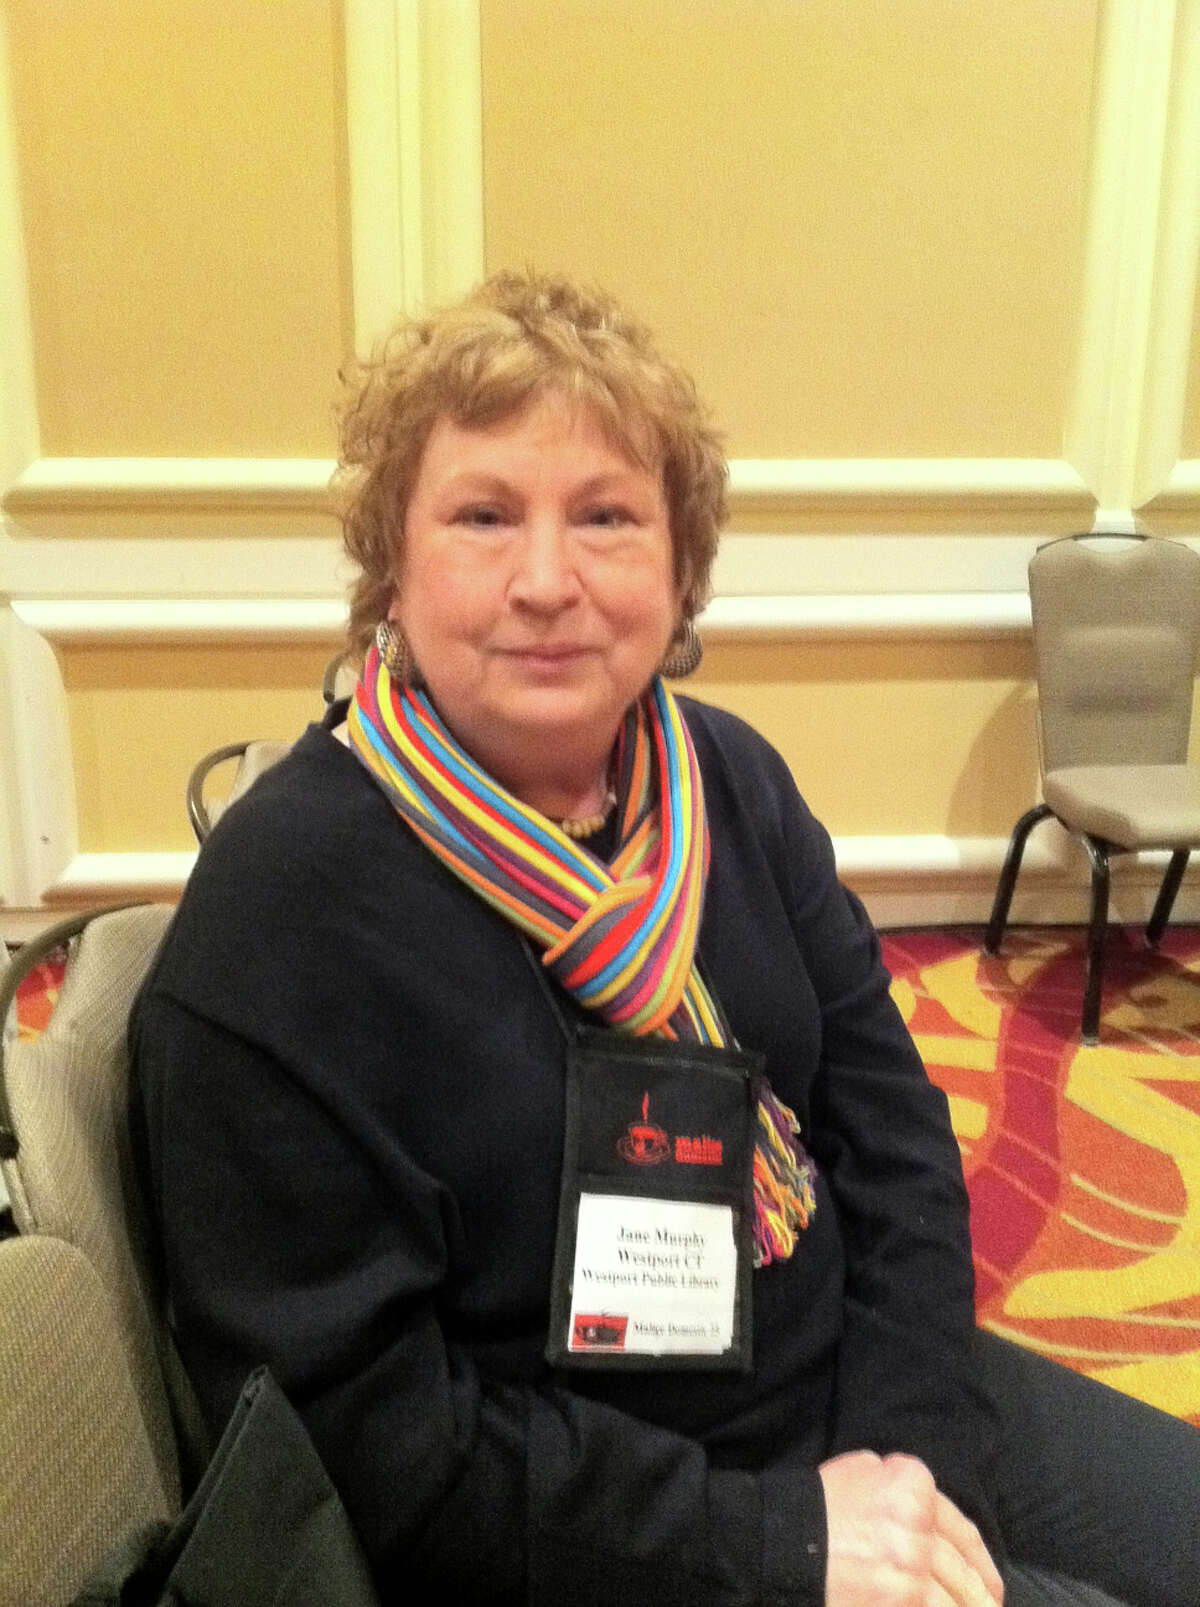 Jane Murphy of the Westport Public Library was part of the Connecticut contingent at the Malice Domestic mystery conference last weekend in the Washington, D.C. area. The librarian, who lives in Bridgeport, was scouting new authors and new titles at the 25th annual gathering.